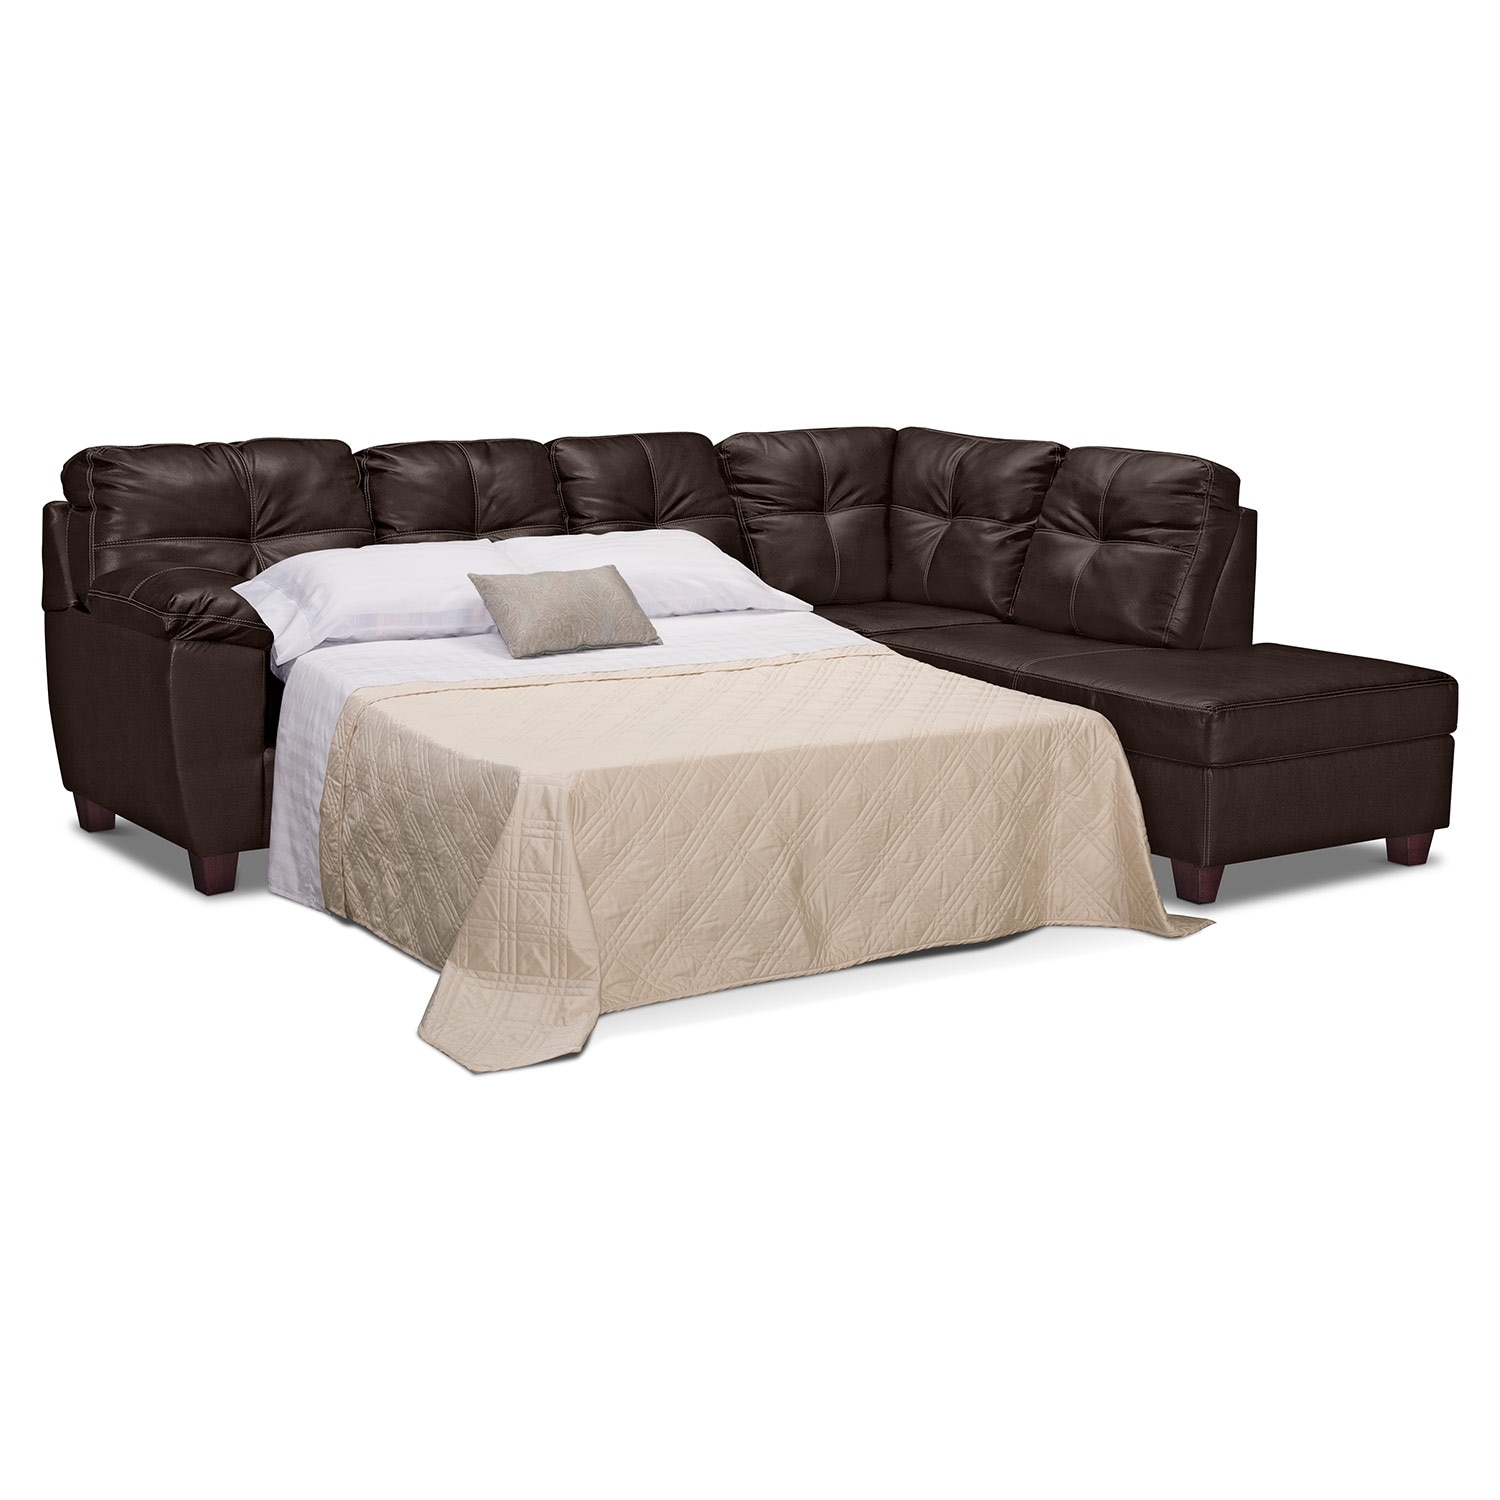 Ricardo 2 Piece Innerspring Sleeper Sectional with Right Facing